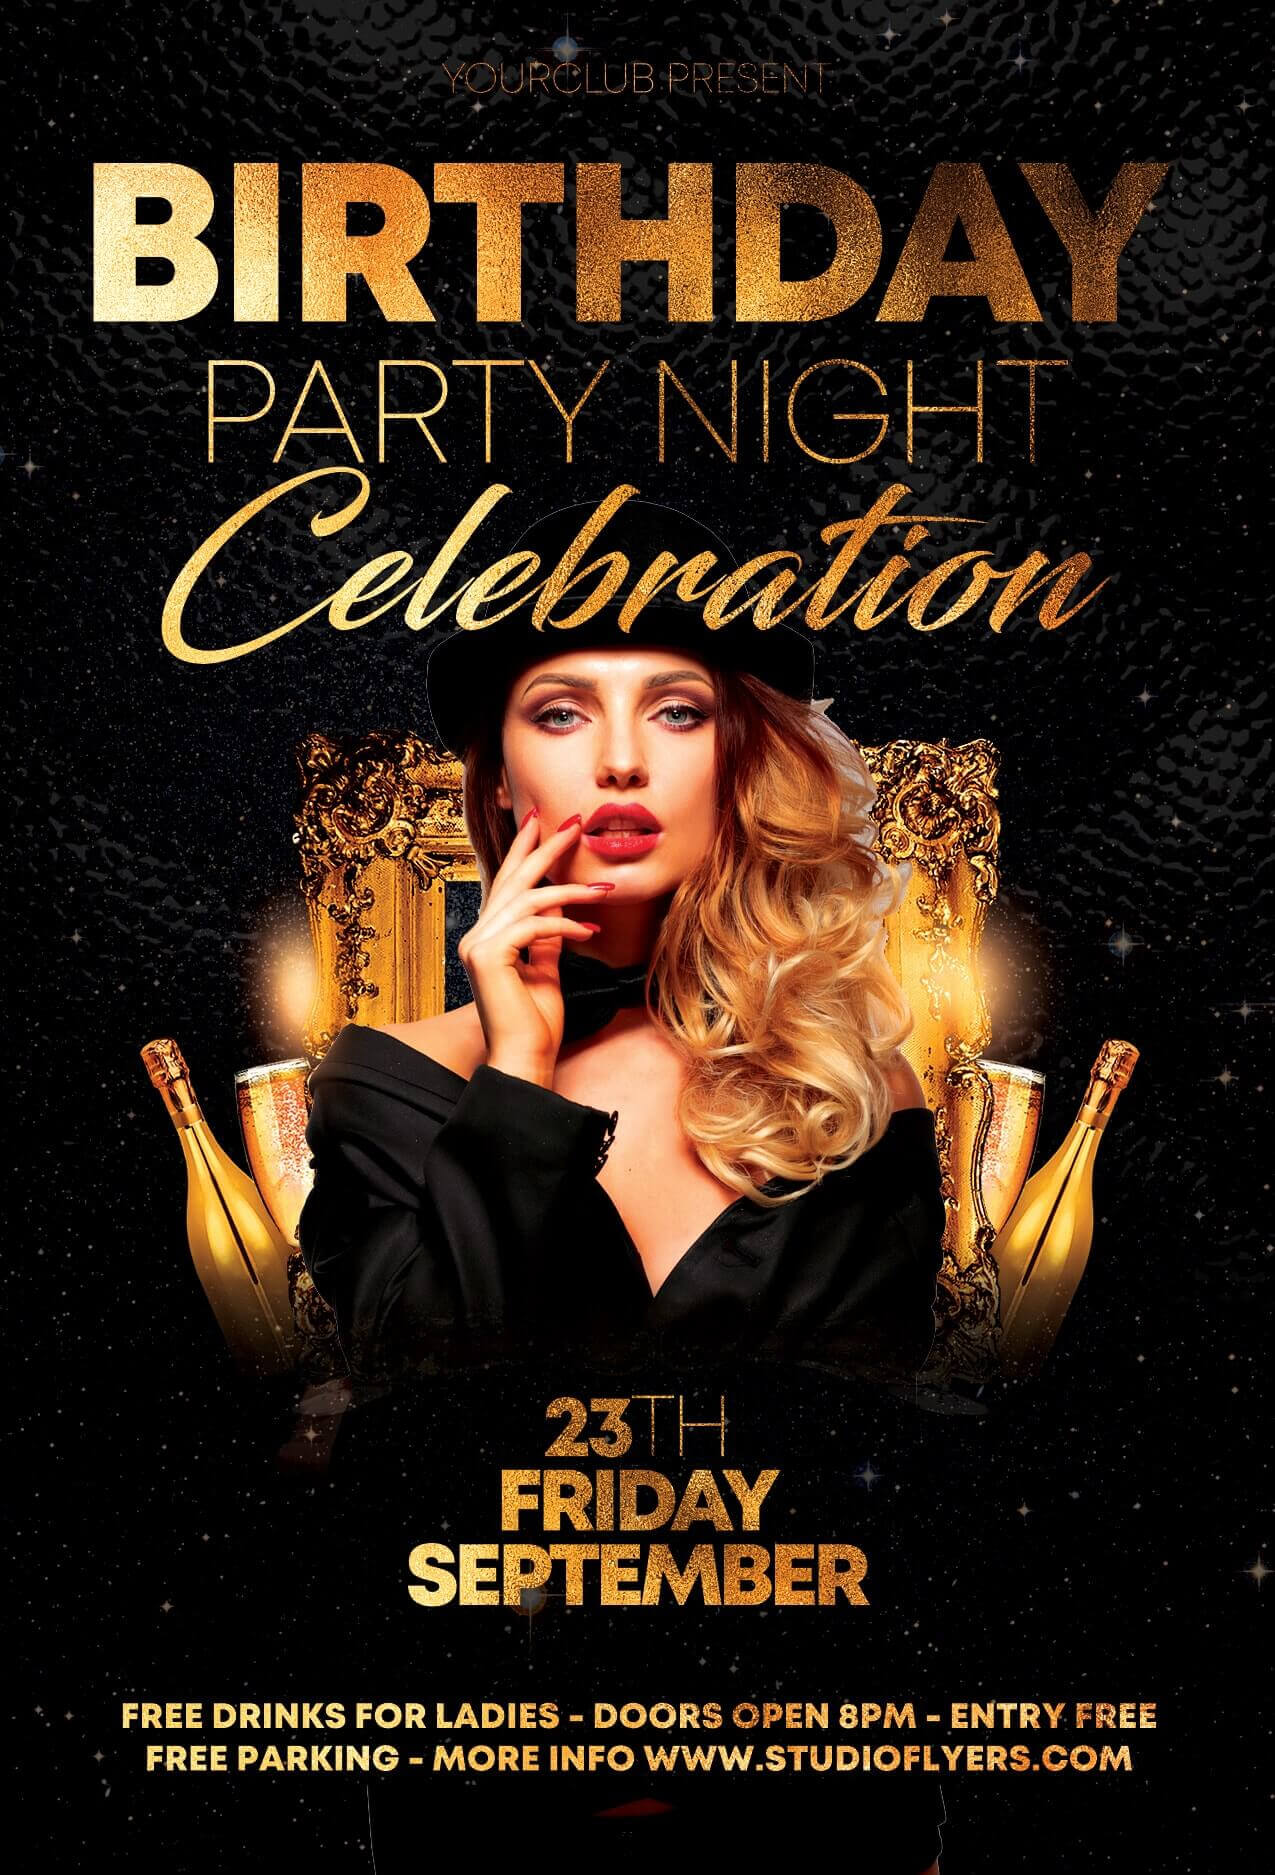 Birthday Party Night Free Psd Flyer Template - Free Psd Within Birthday Party Flyer Templates Free